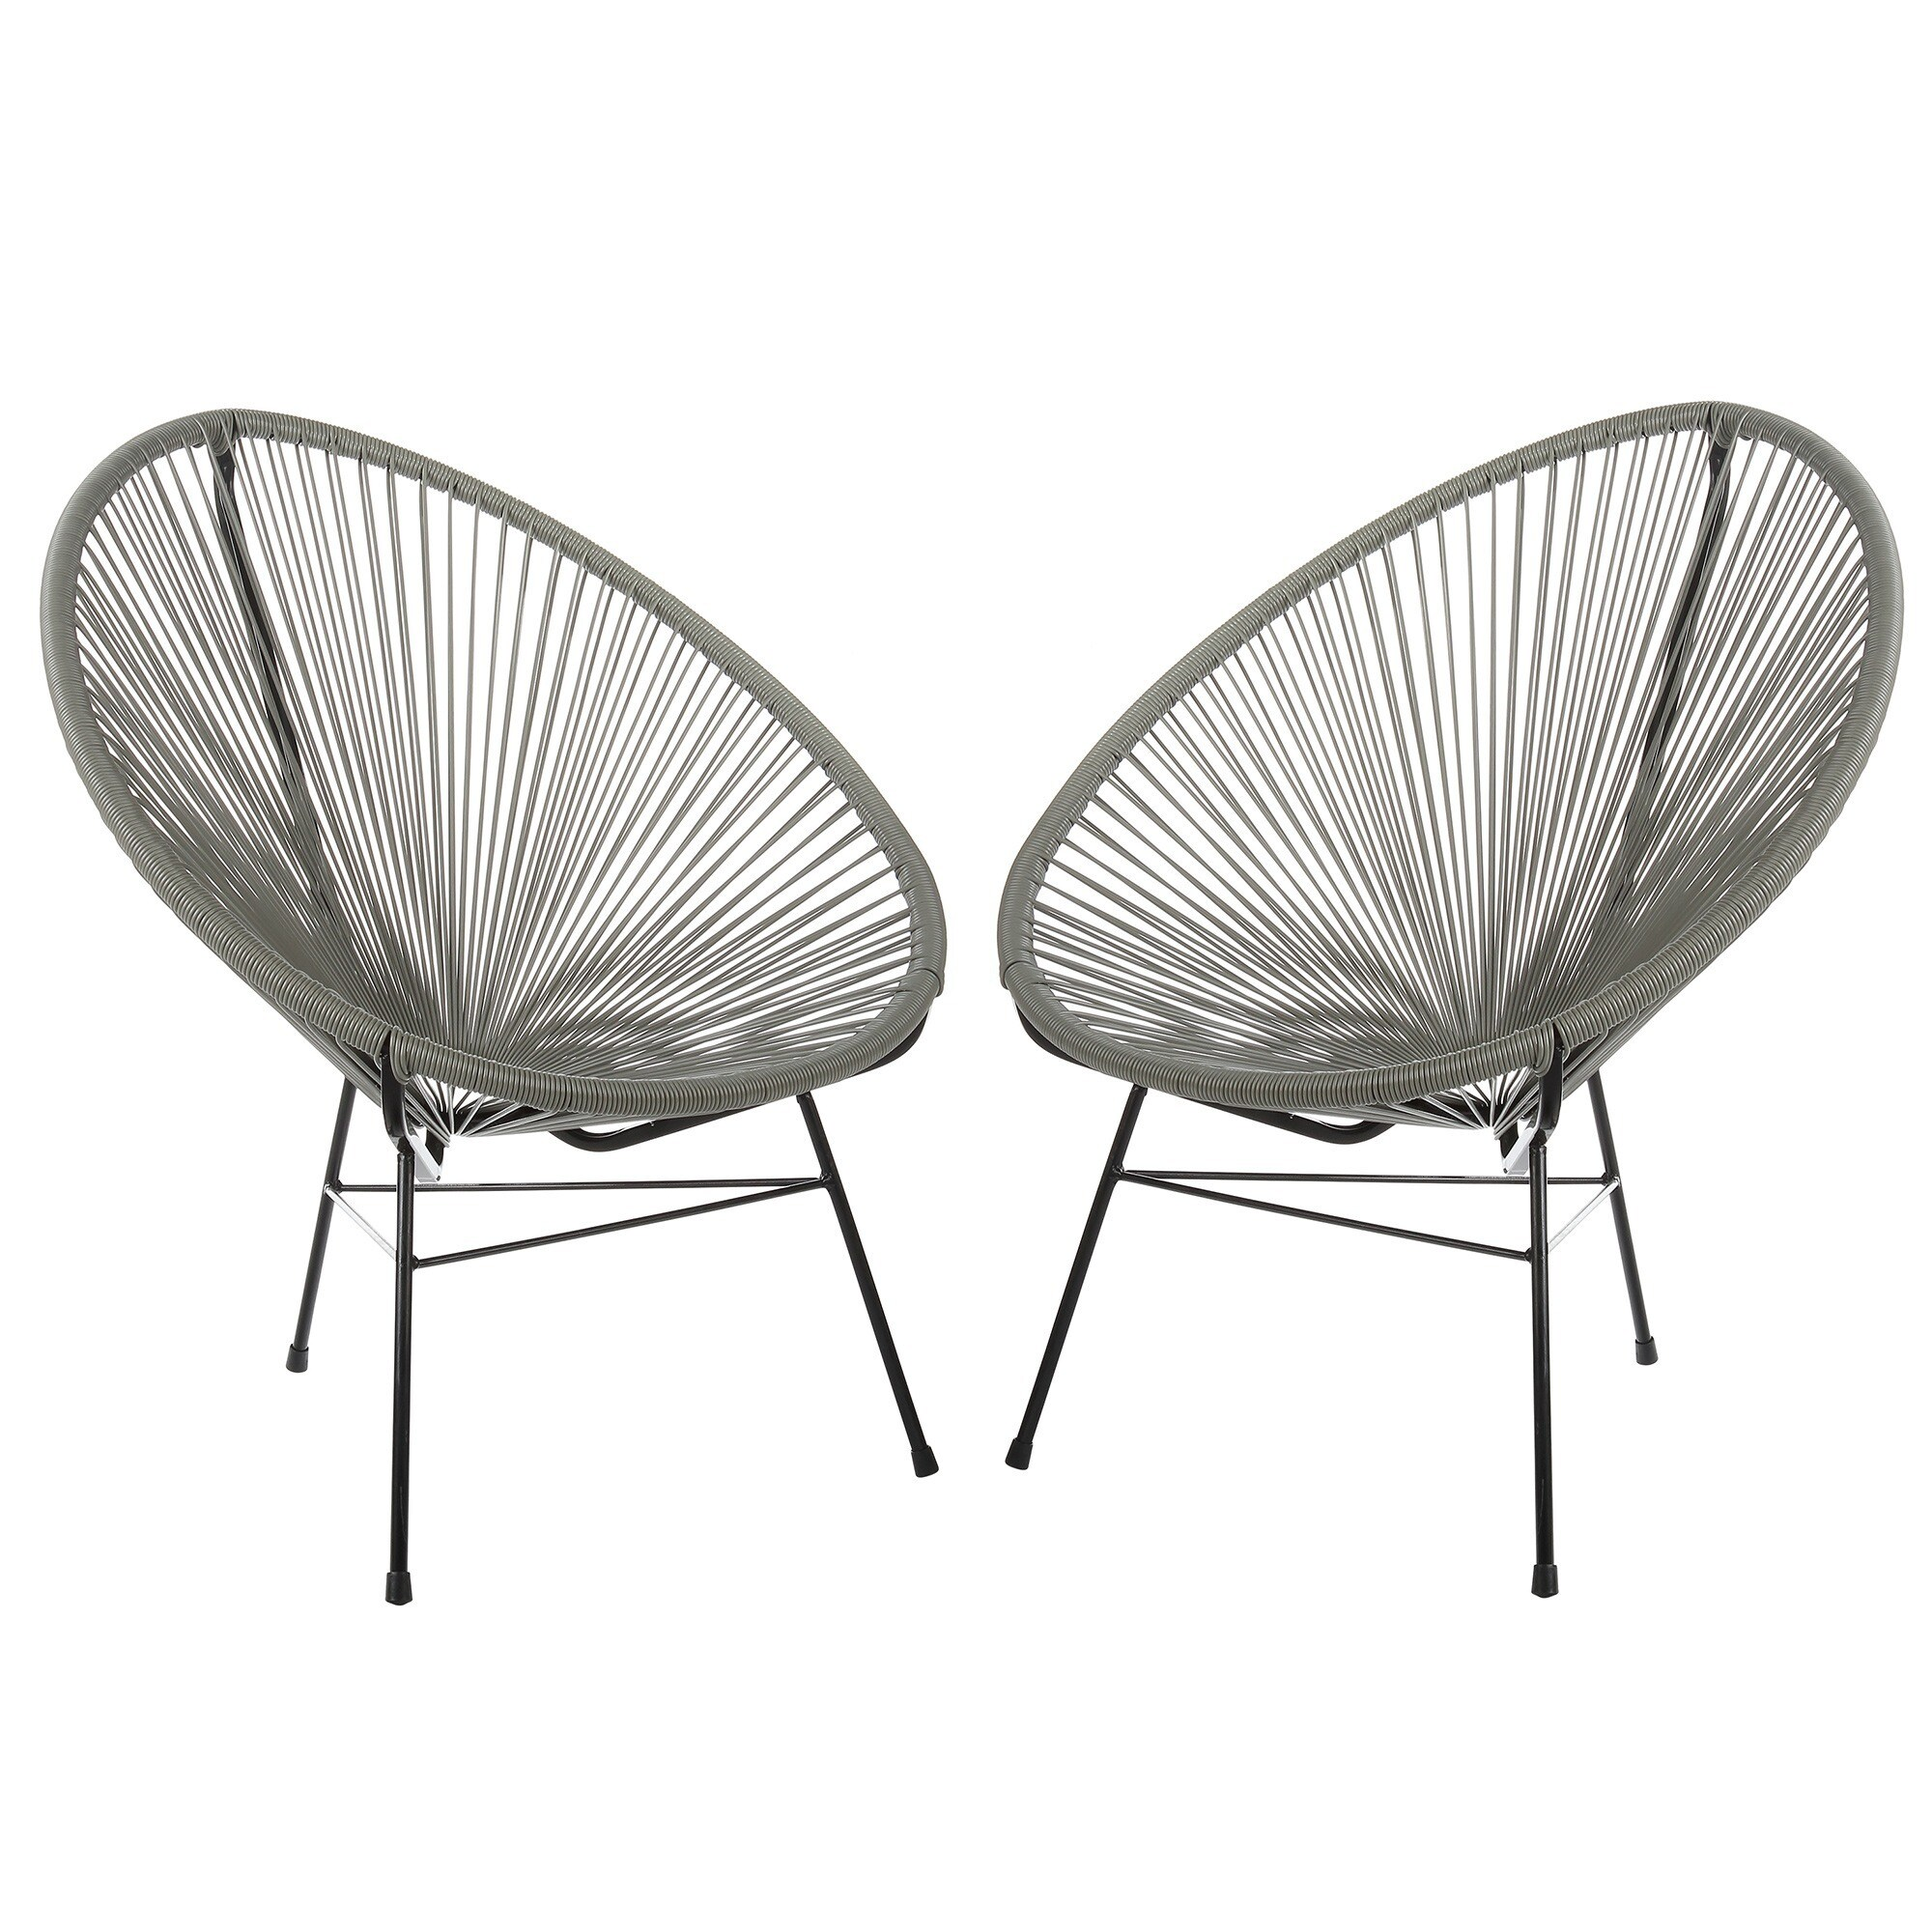 Set of 2 Acapulco Basket Lounge Chairs - Free Shipping Today ...